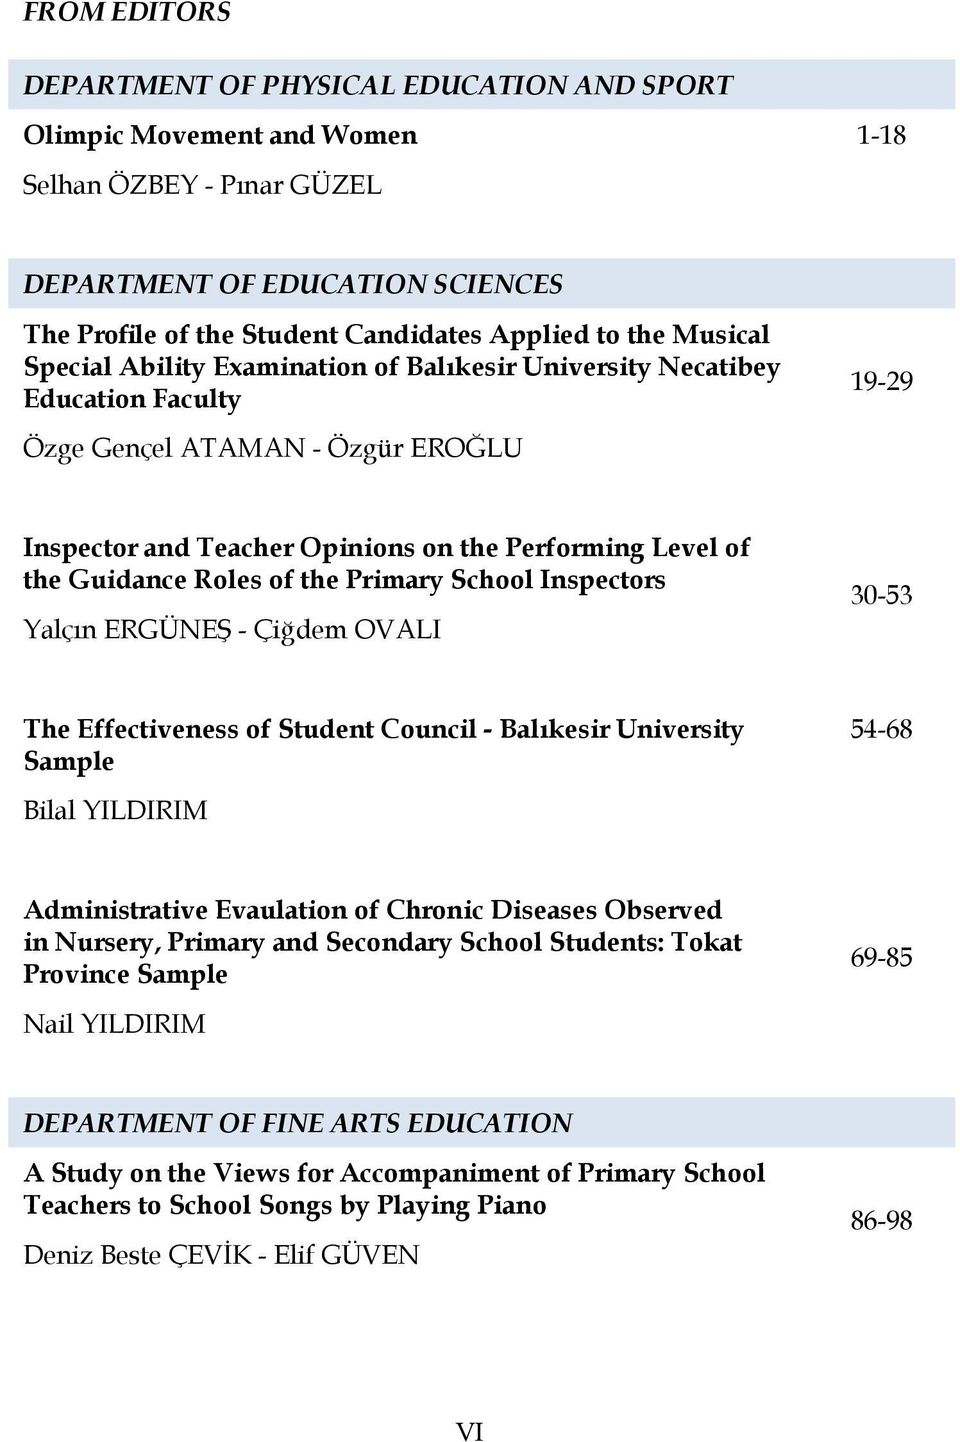 Guidance Roles of the Primary School Inspectors Yalçın ERGÜNEŞ - Çiğdem OVALI 30-53 The Effectiveness of Student Council - Balıkesir University Sample 54-68 Bilal YILDIRIM Administrative Evaulation